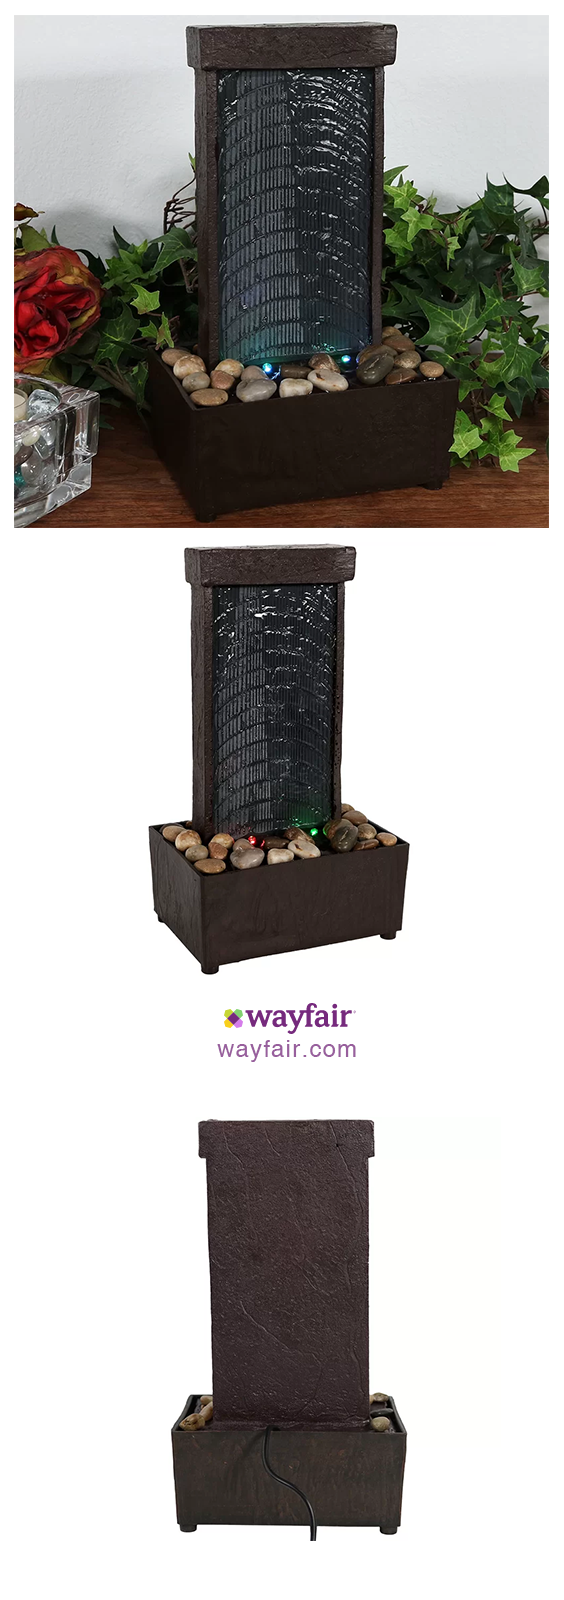 Add relaxation and calmness to your home with a new table fountain ...